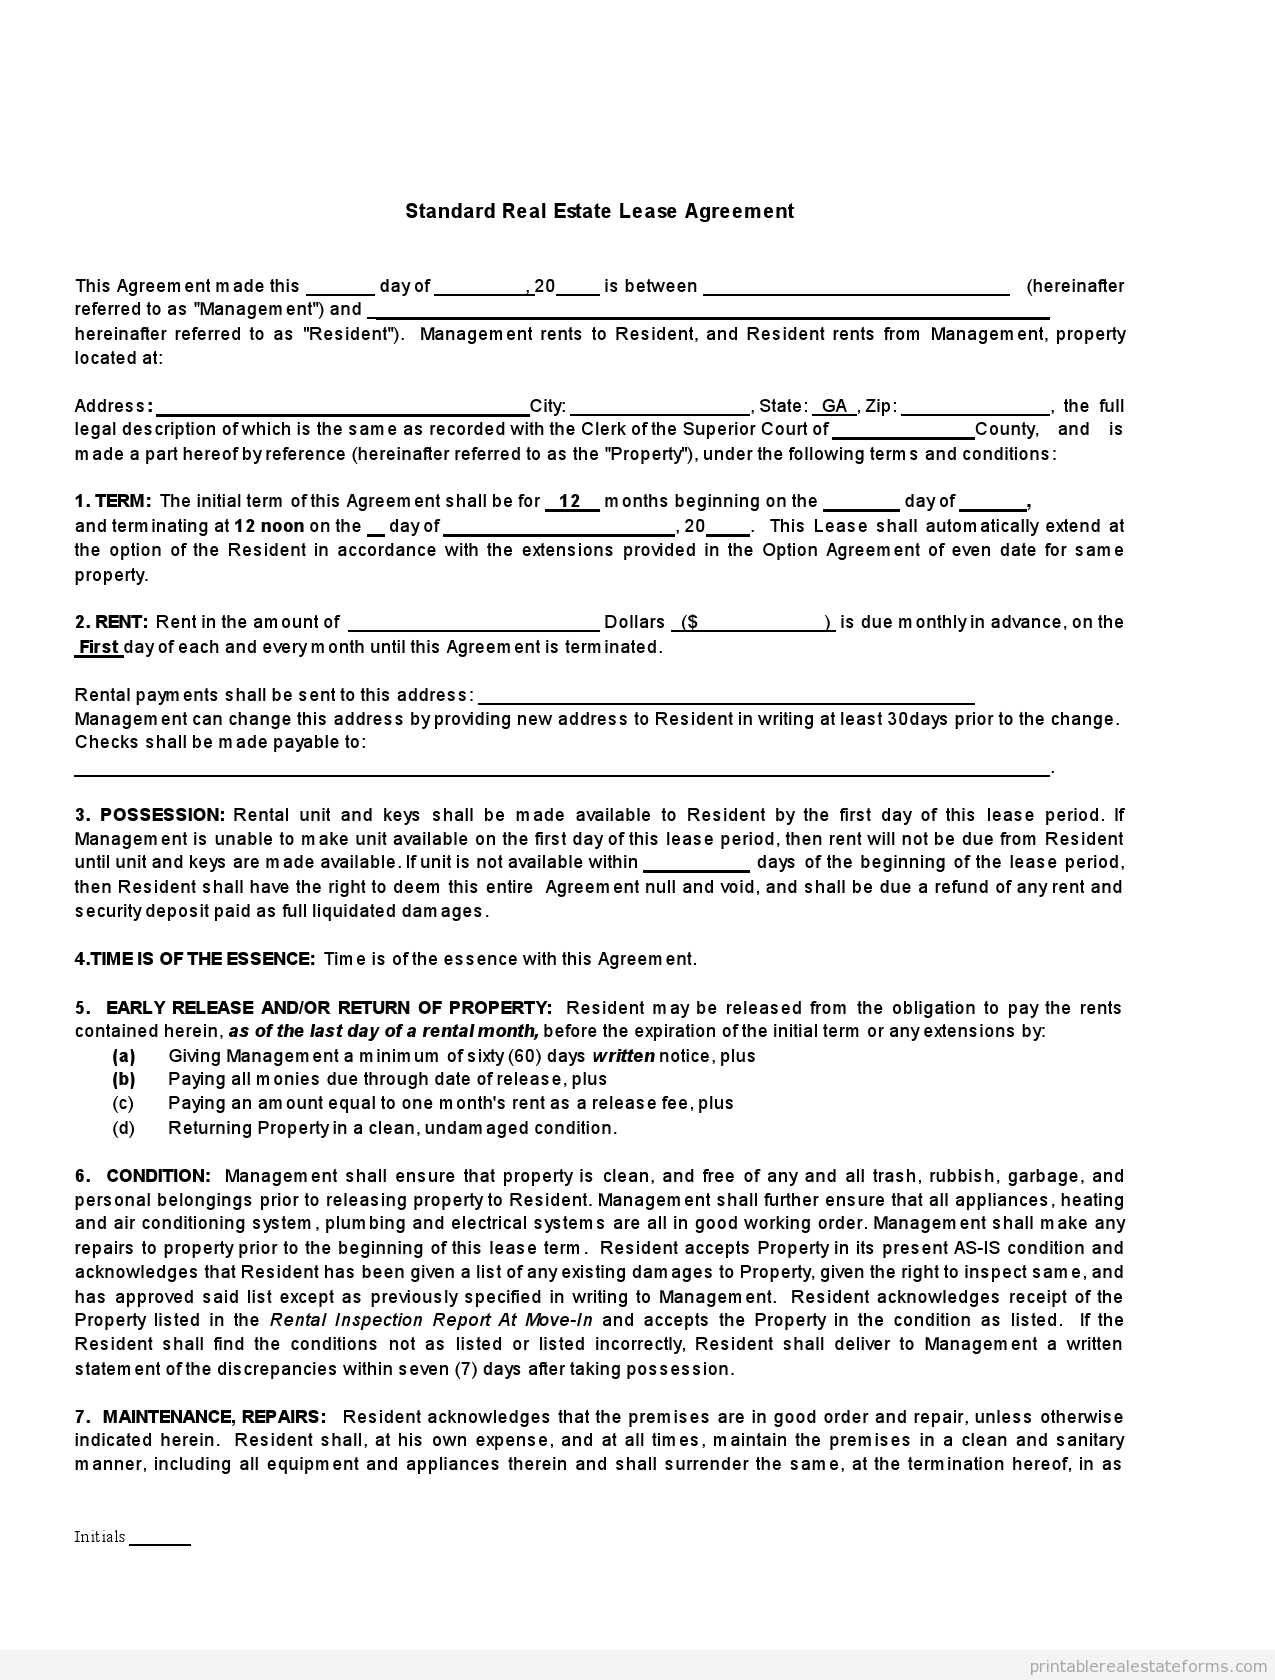 Printable Standard Real Estate Lease Agreement Buying Template